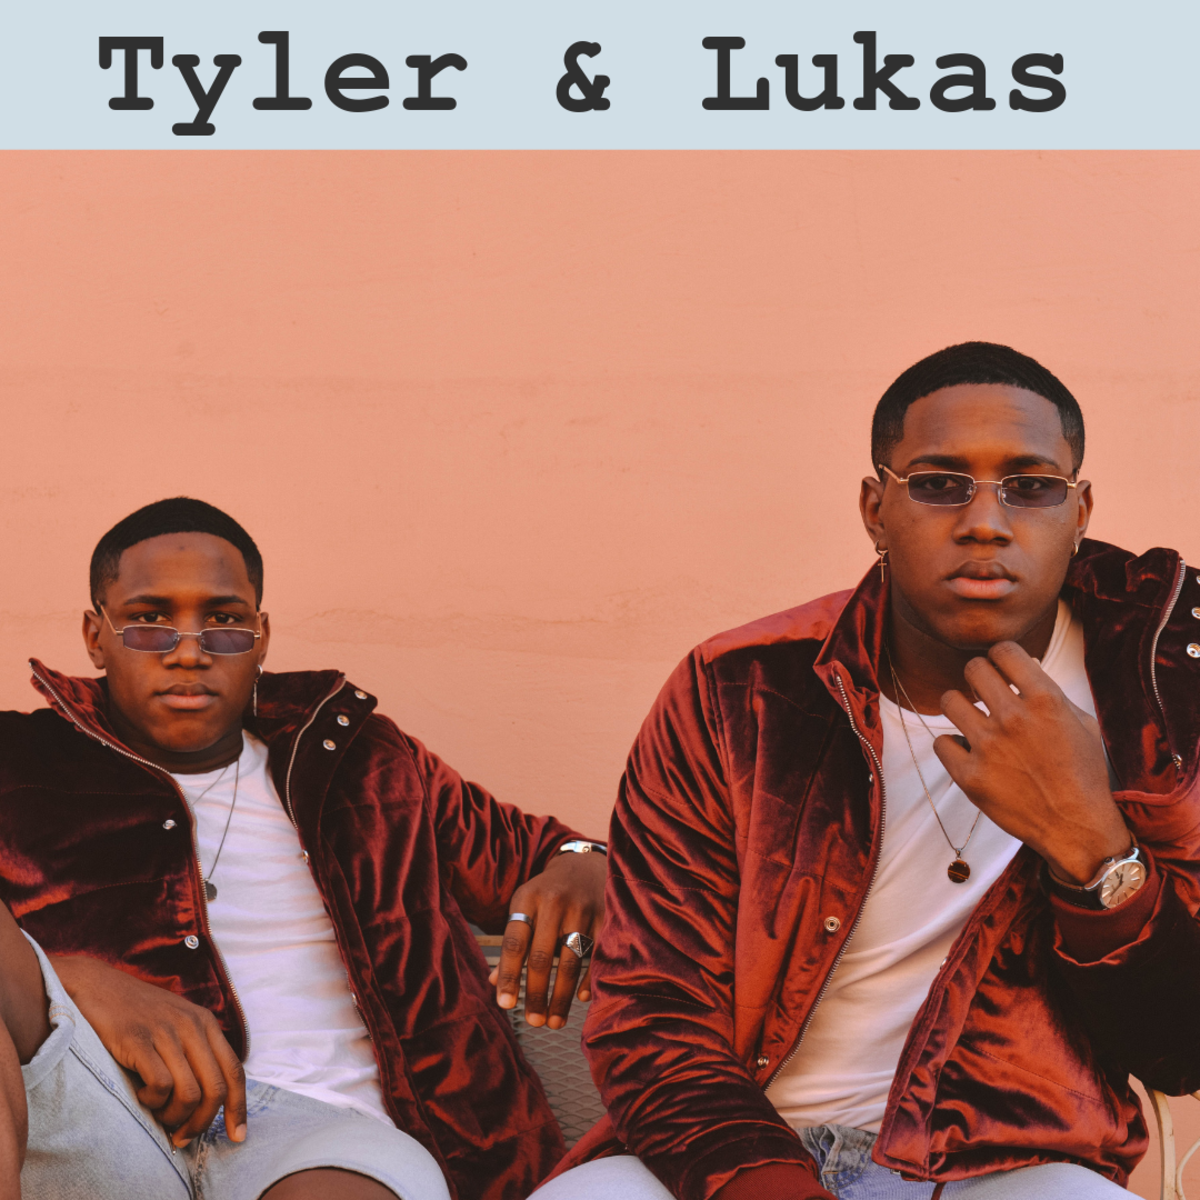 Tyler and Lukas